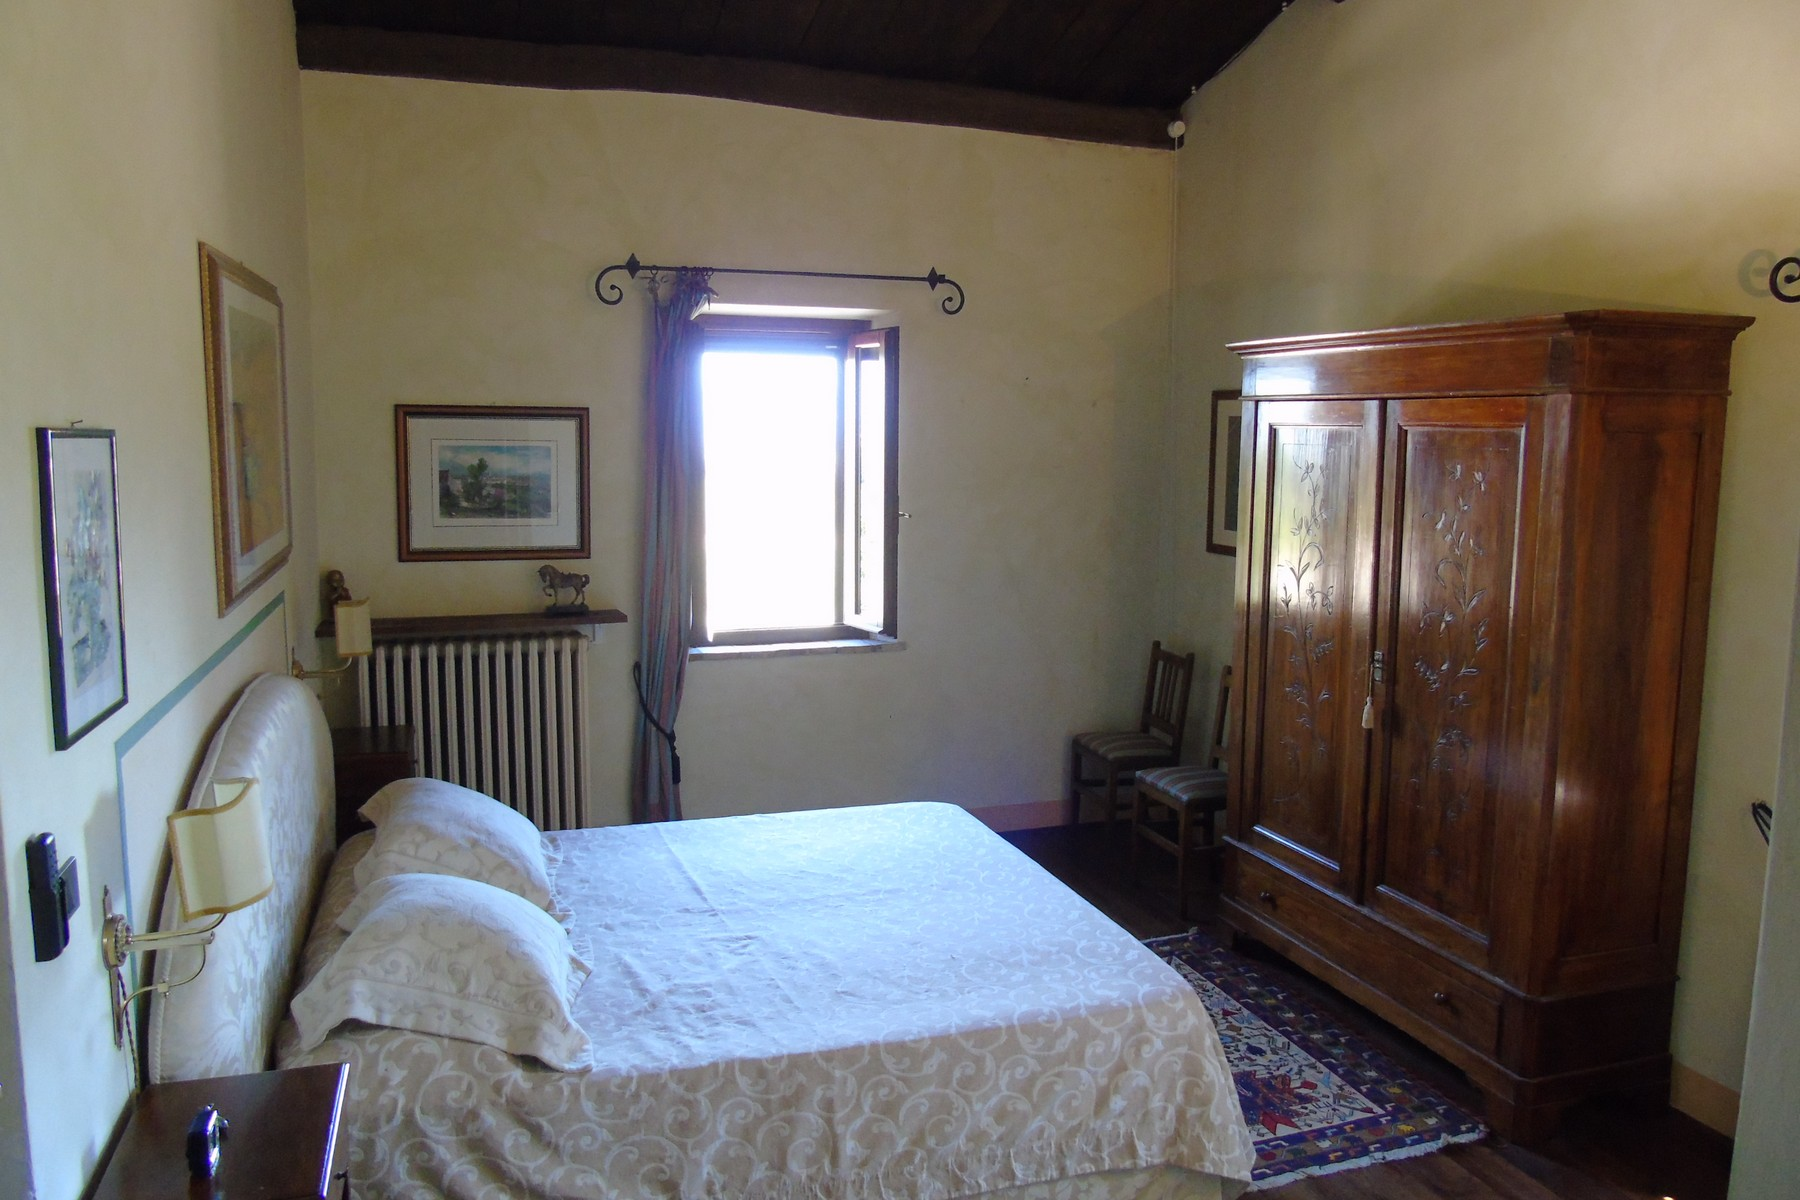 Additional photo for property listing at Lovely farmhouse with panaromic views of Assisi Via dei Colli Bettona Perugia, Perugia 06084 Italien